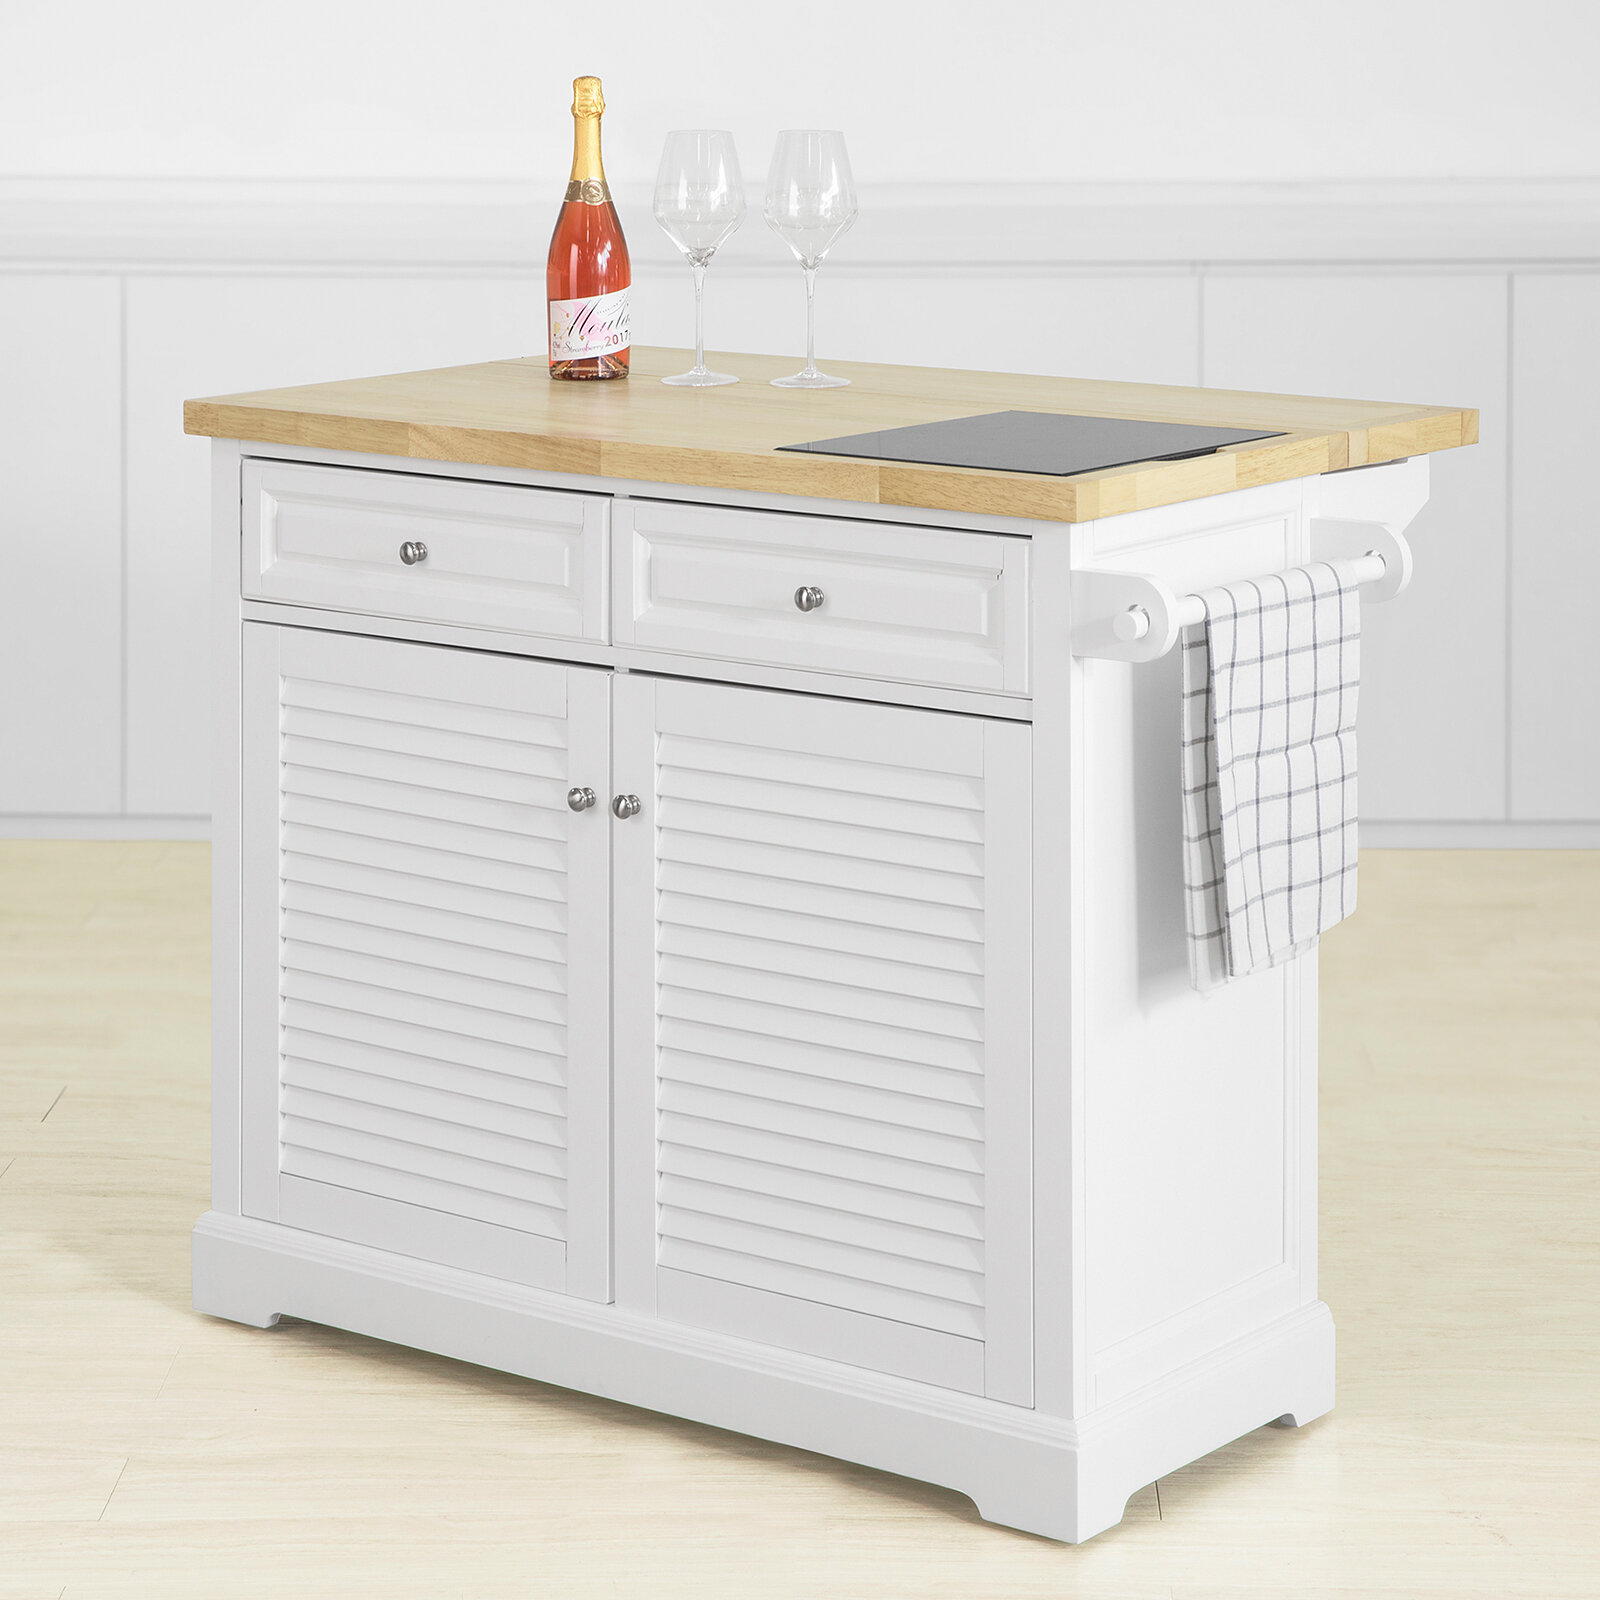 17 Stories Liano Kitchen Island Trolley With Marble Top Reviews